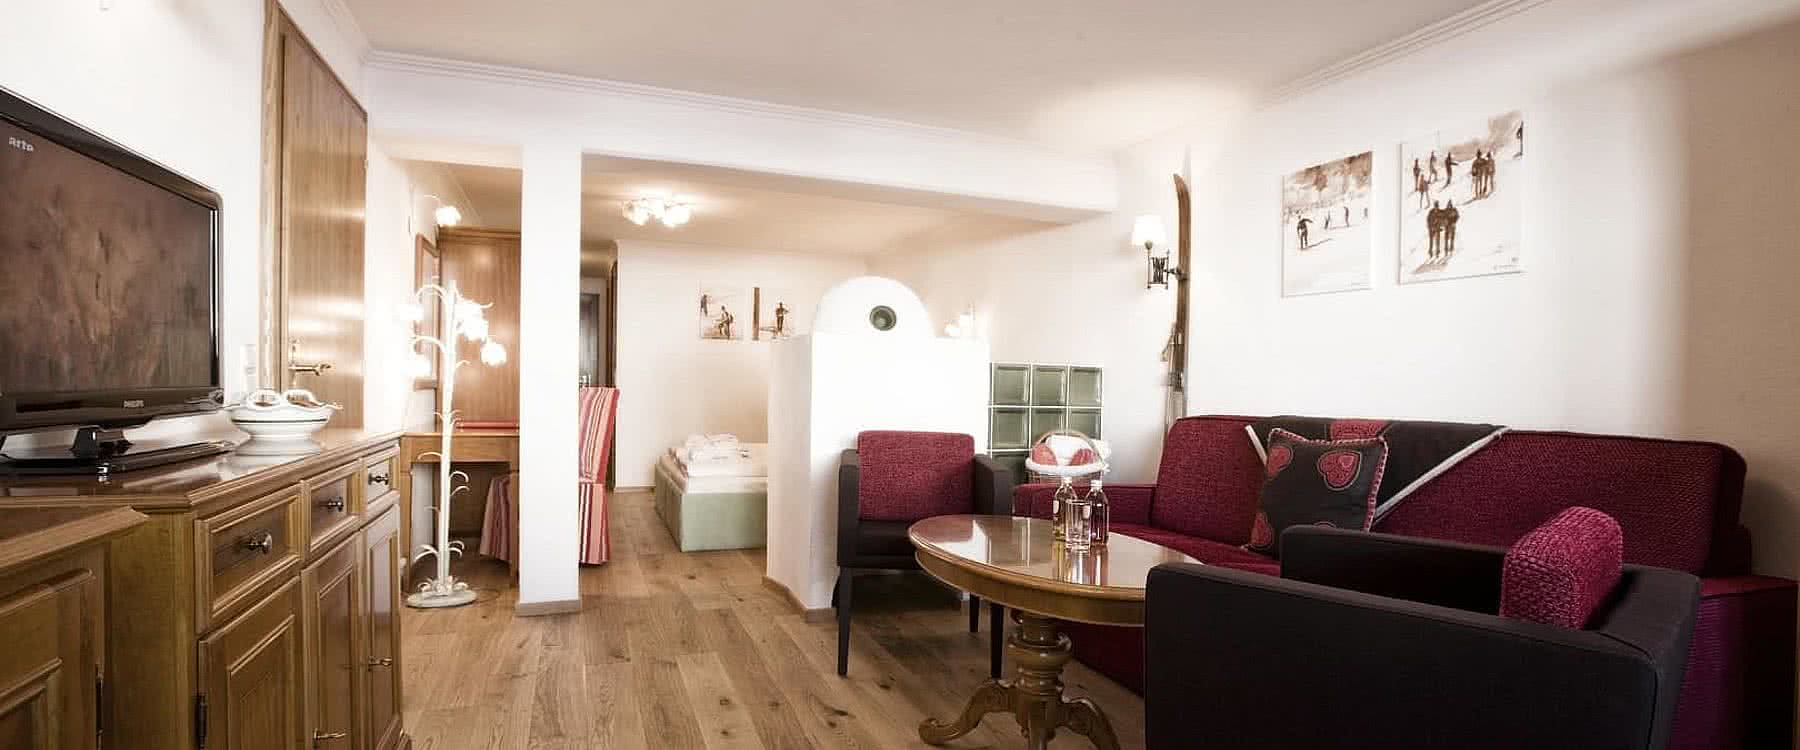 Doppelwaschbecken Glas Family Suite Petersboden Hotel Goldener Berg